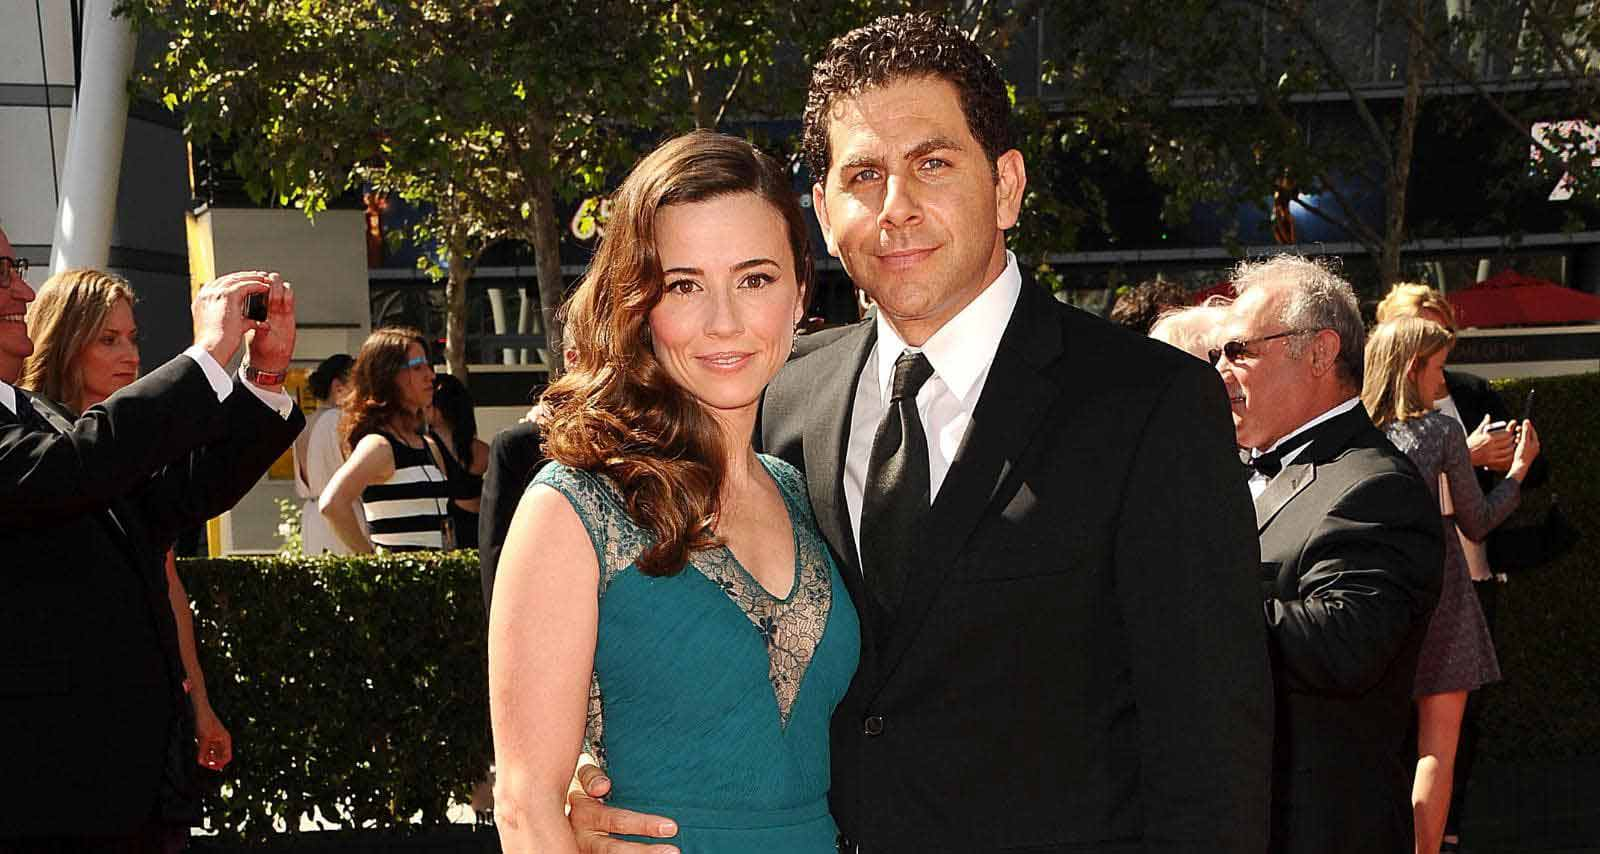 Steven Rodriguez Wiki, Age, Family, Daughter, Parents, Make up artist and Facts About Linda Cardellini's Partner fiance